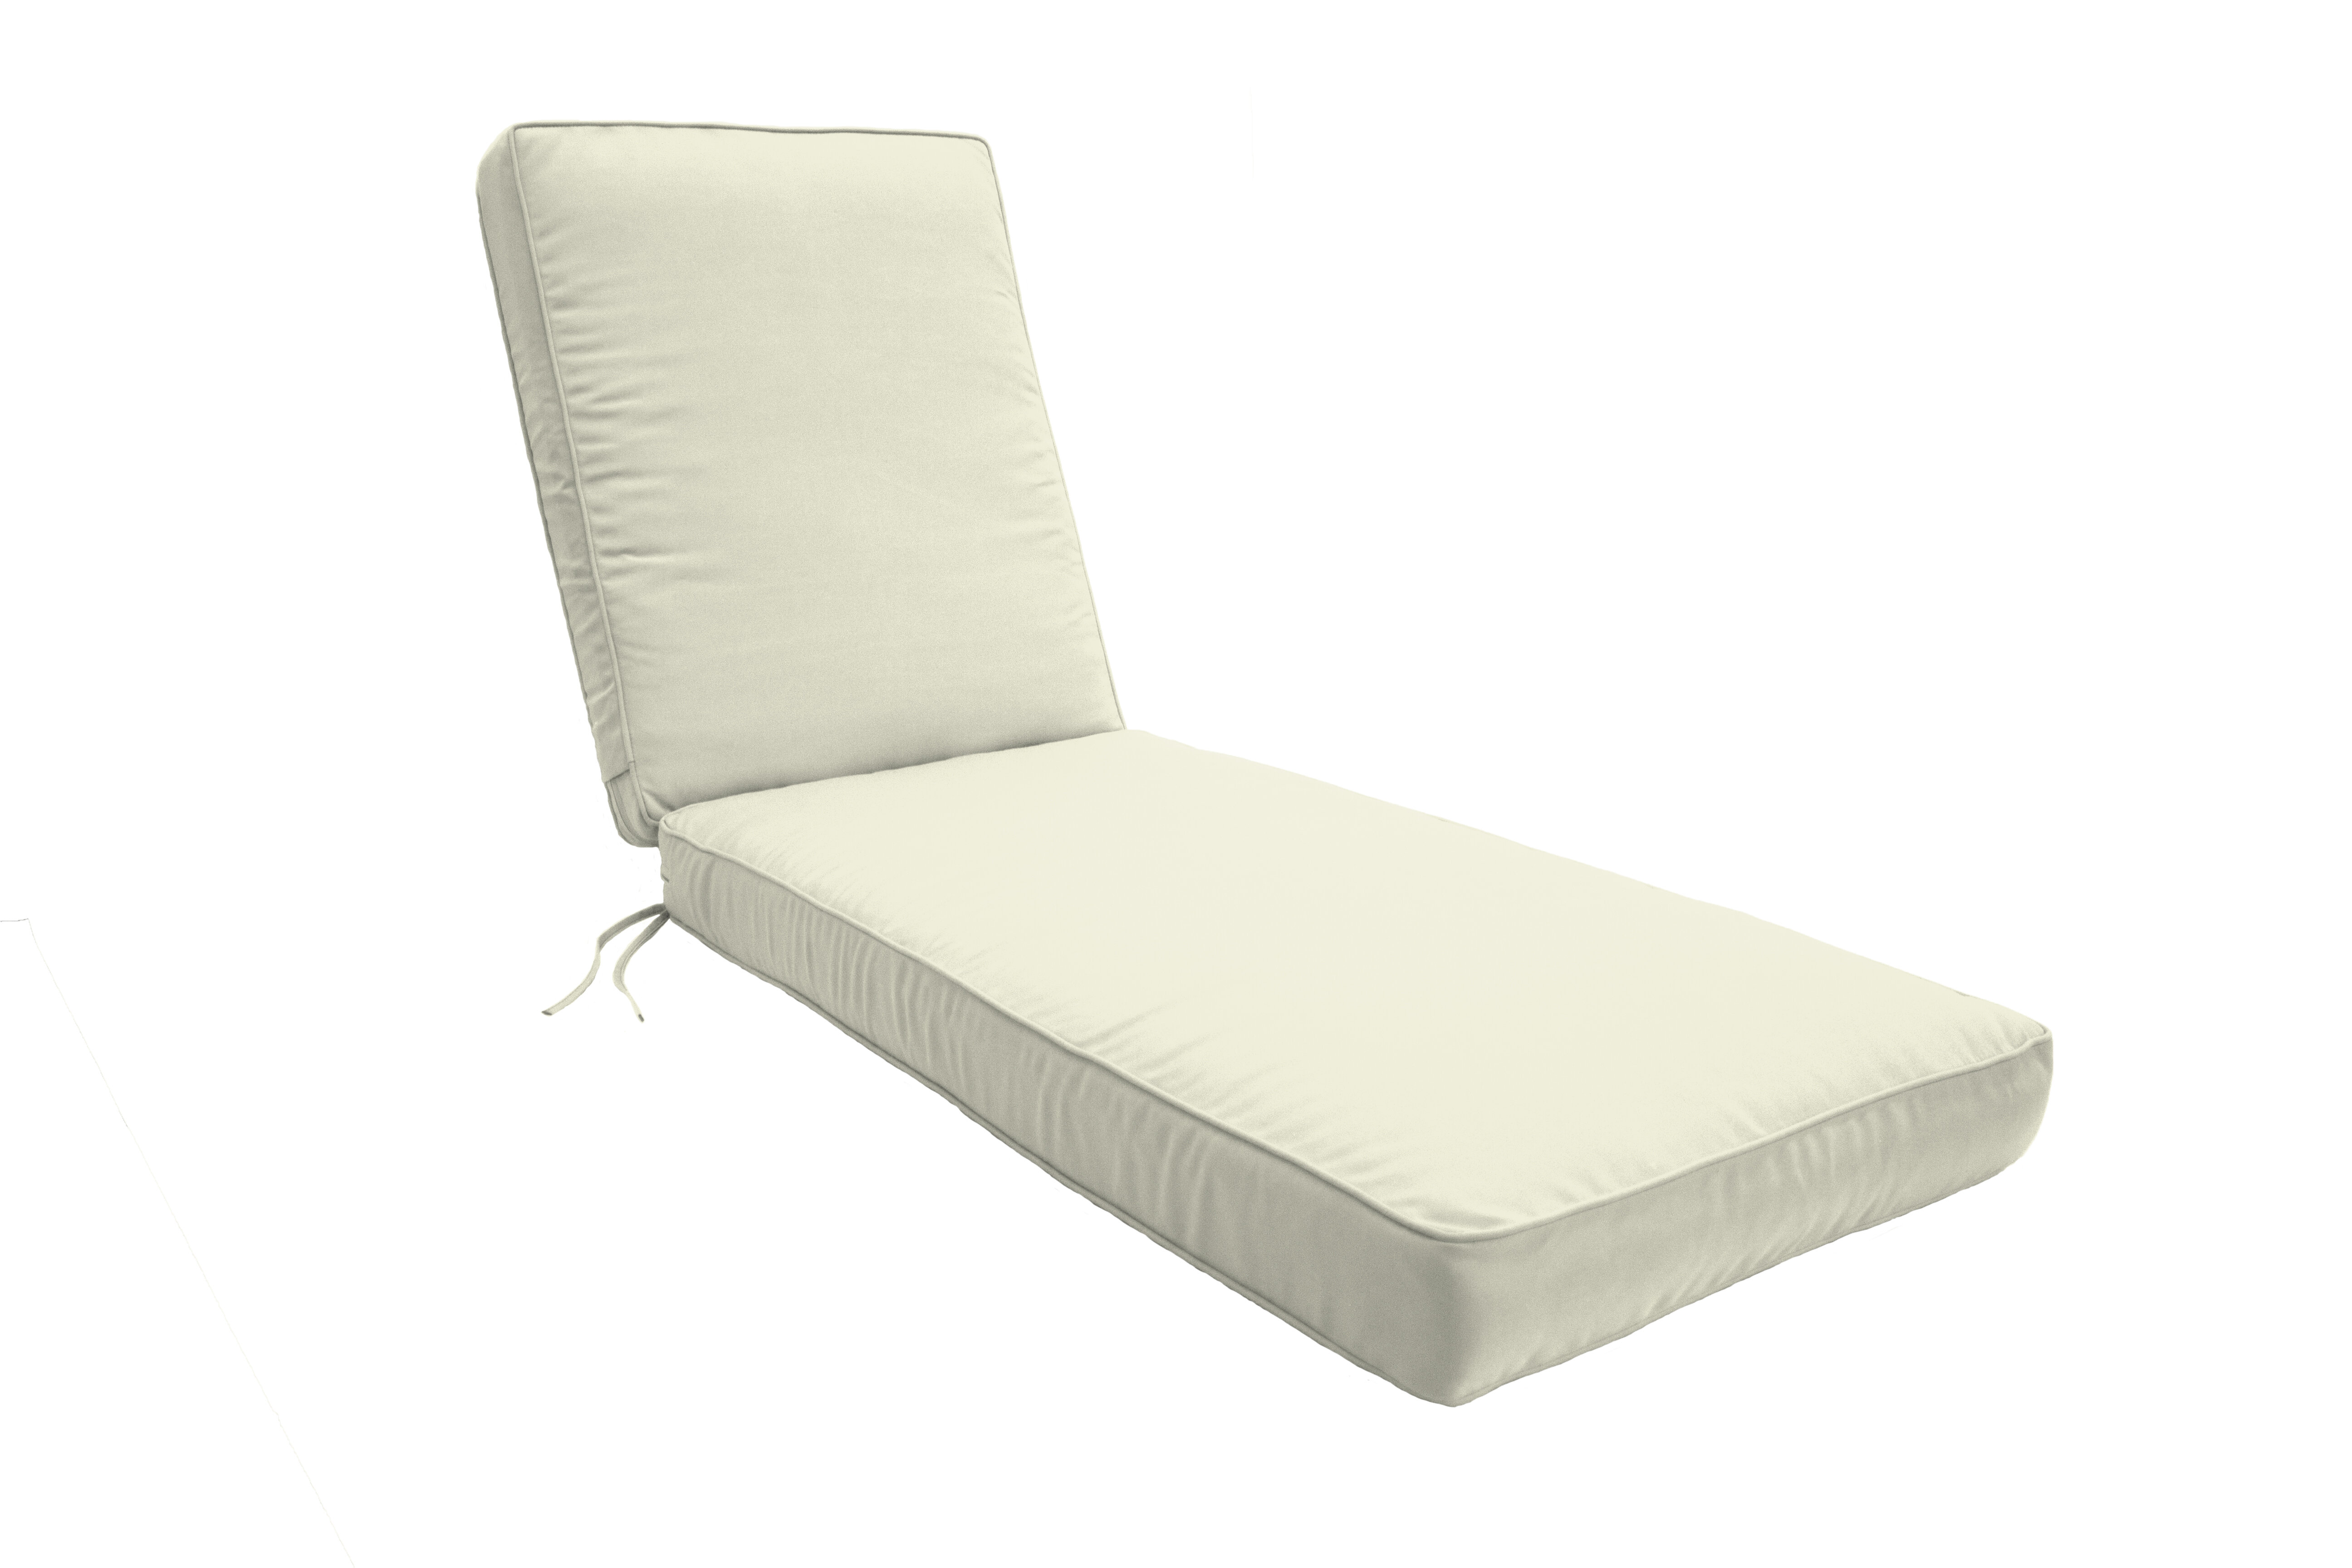 Awesome Cheap Chaise Lounge Cushions